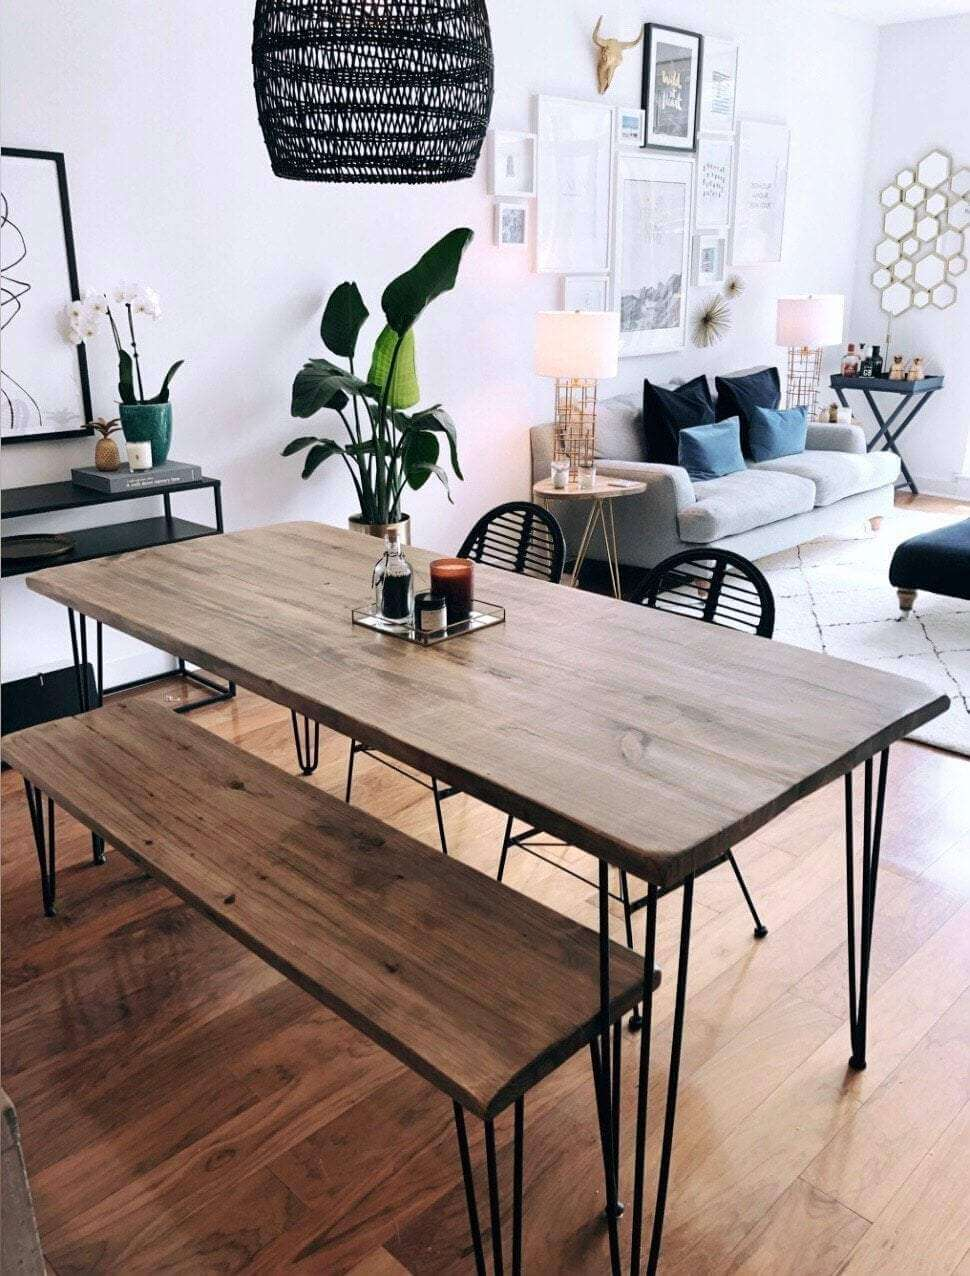 SMOOTH SURFACE RECLAIMED WOOD DINING ROOM TABLE DESIGN IDEAS